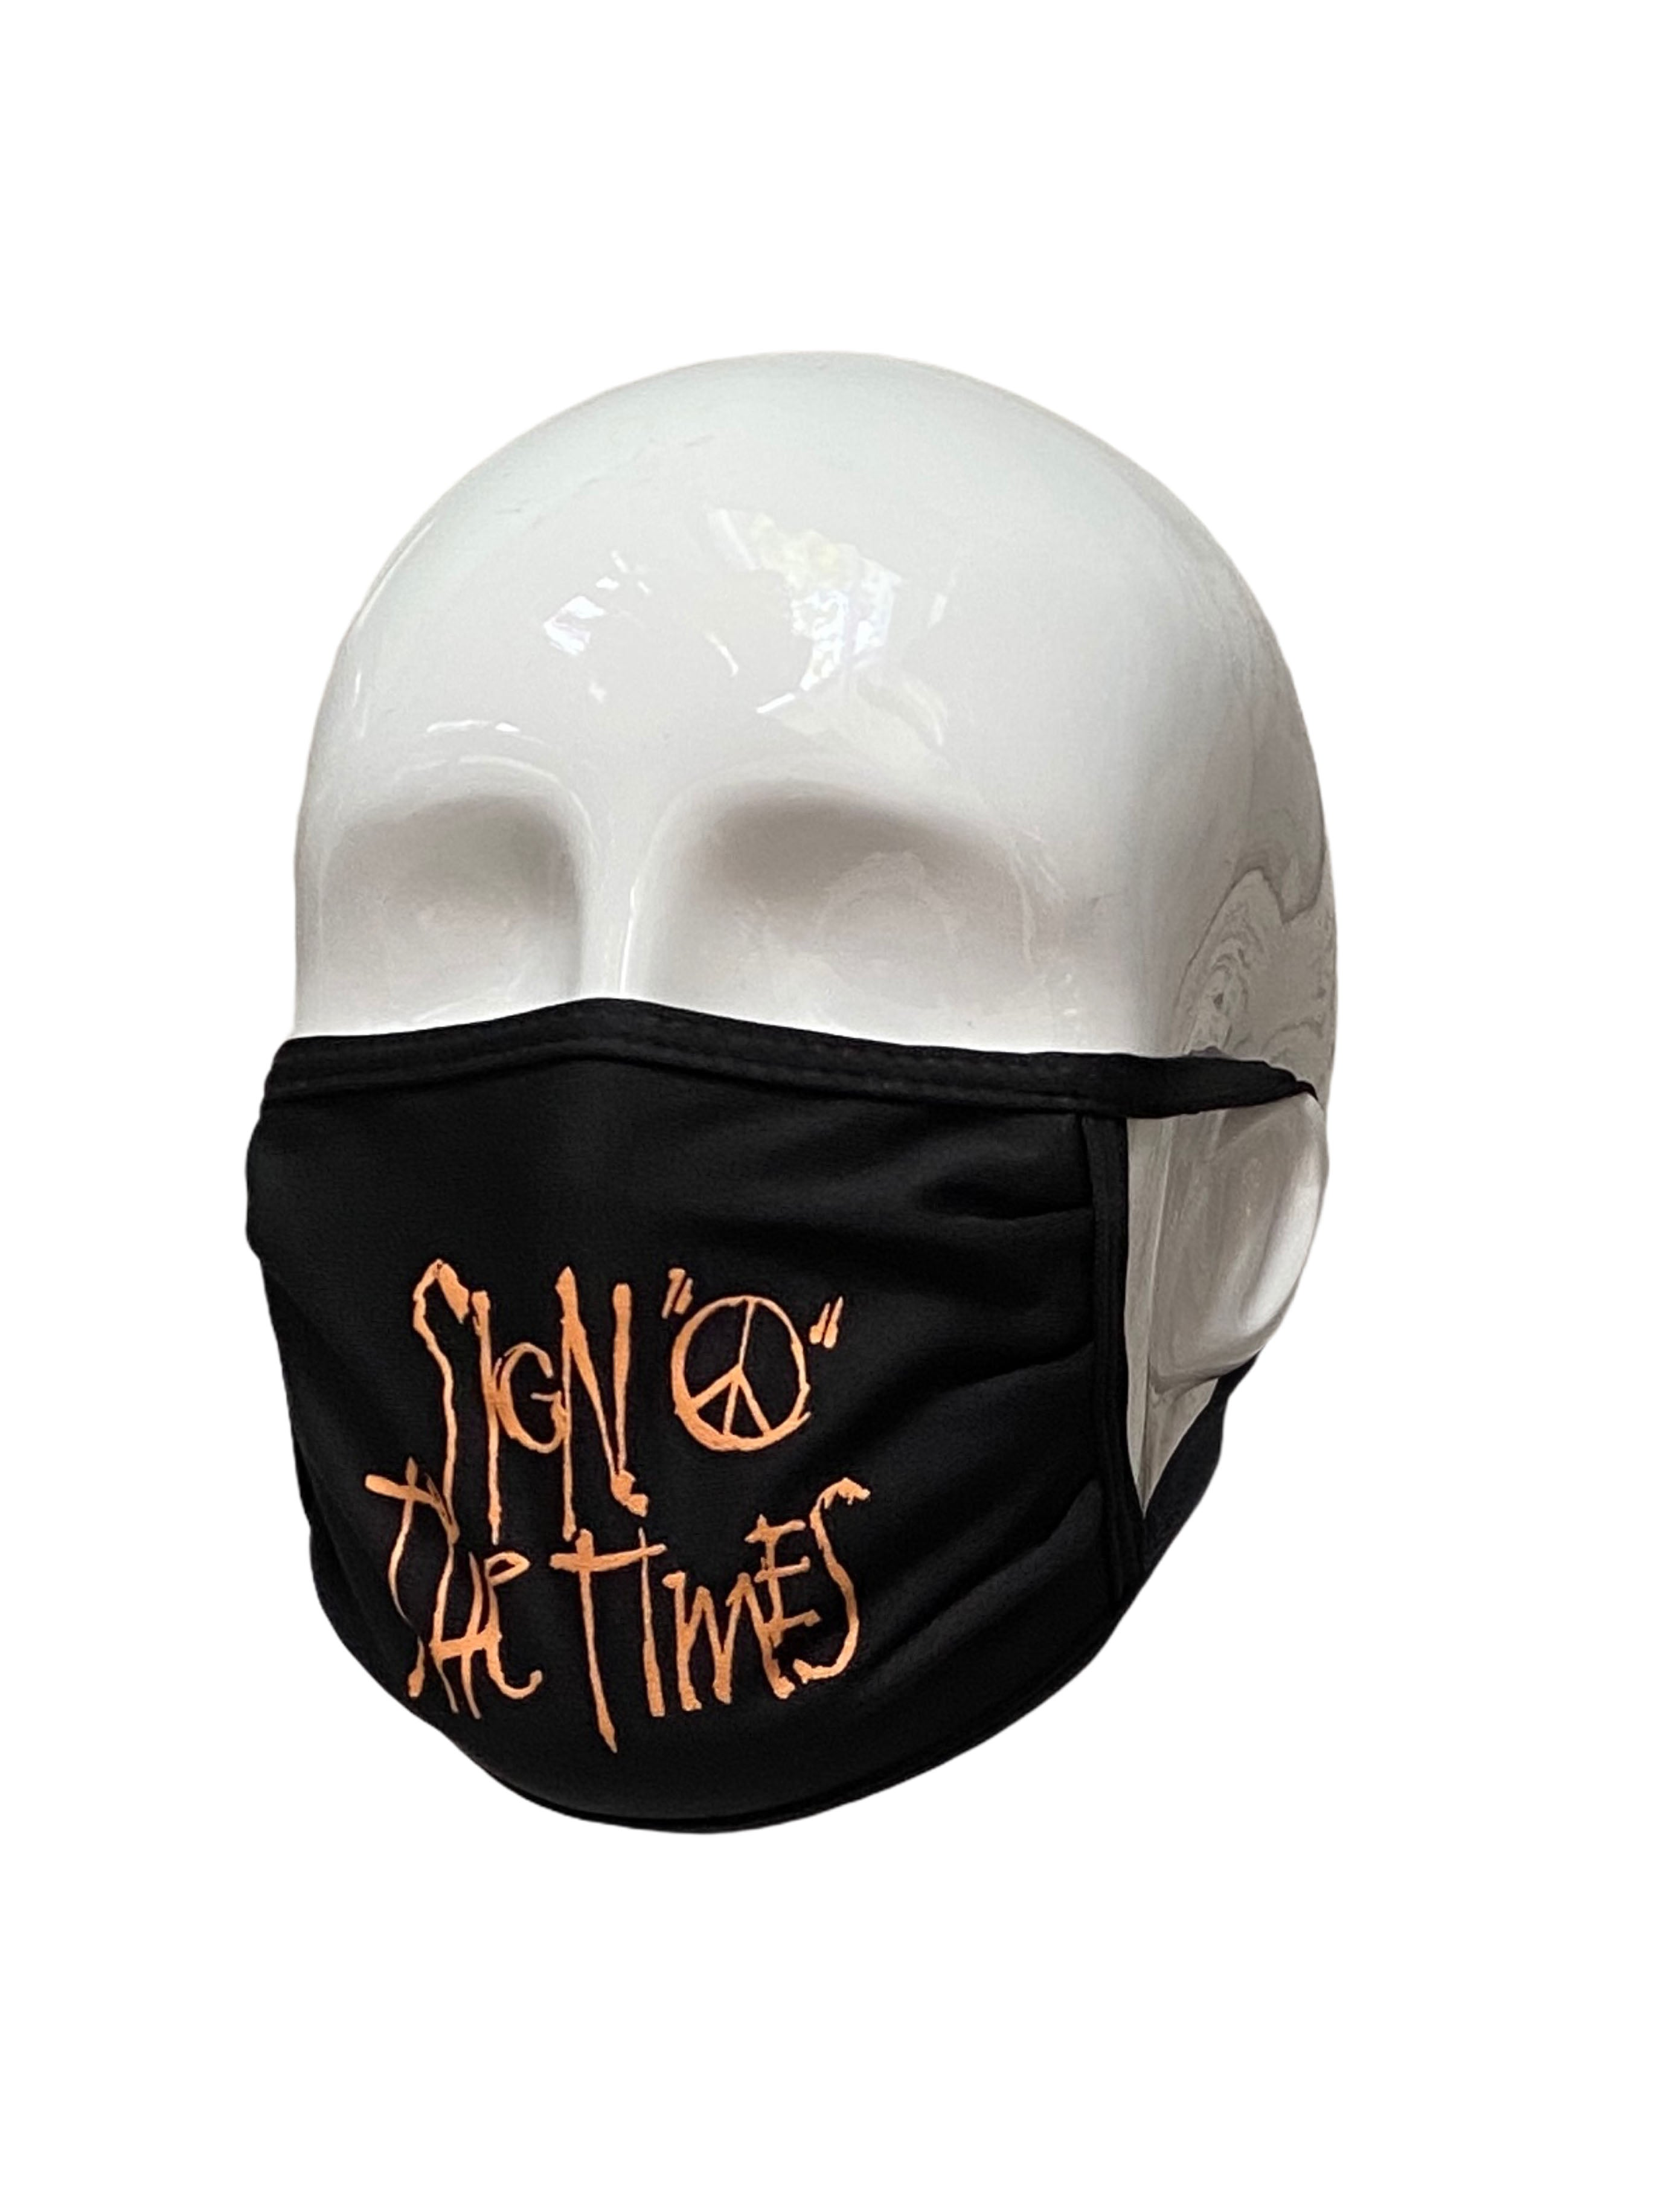 Official Sign O The Times Paisley Park Merchandise Face Mask Brand New Prince